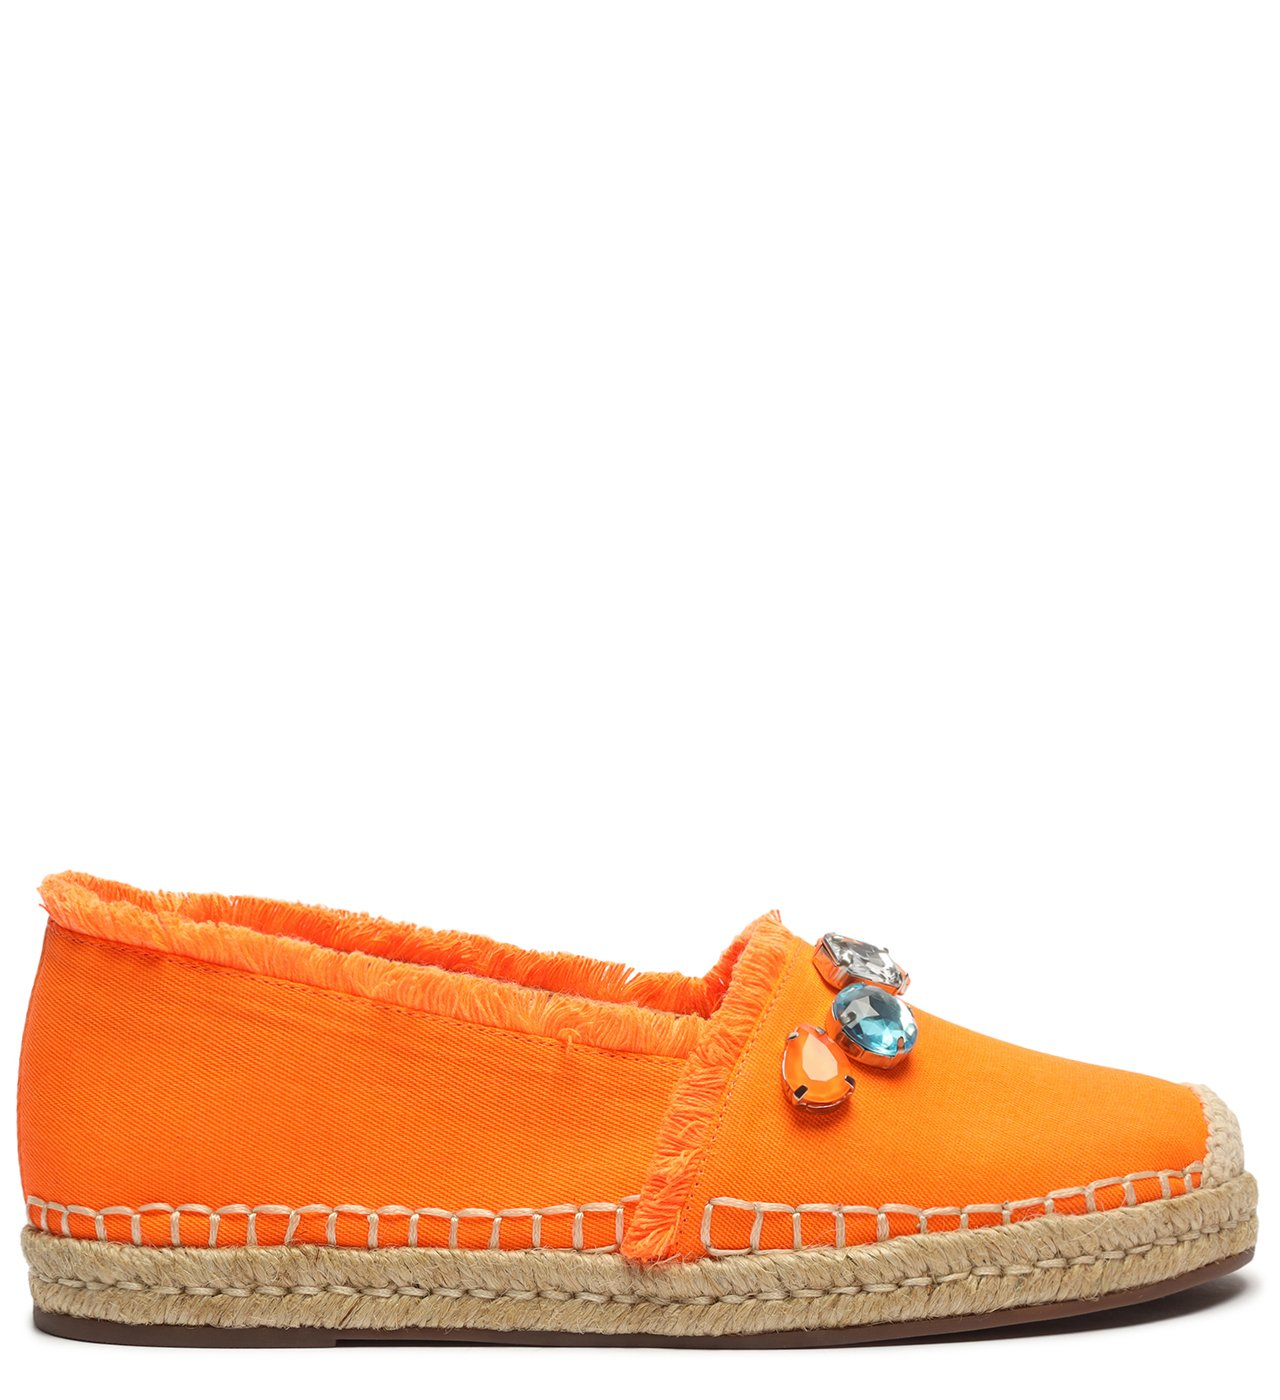 Alpargata Pop Glam Orange | Schutz